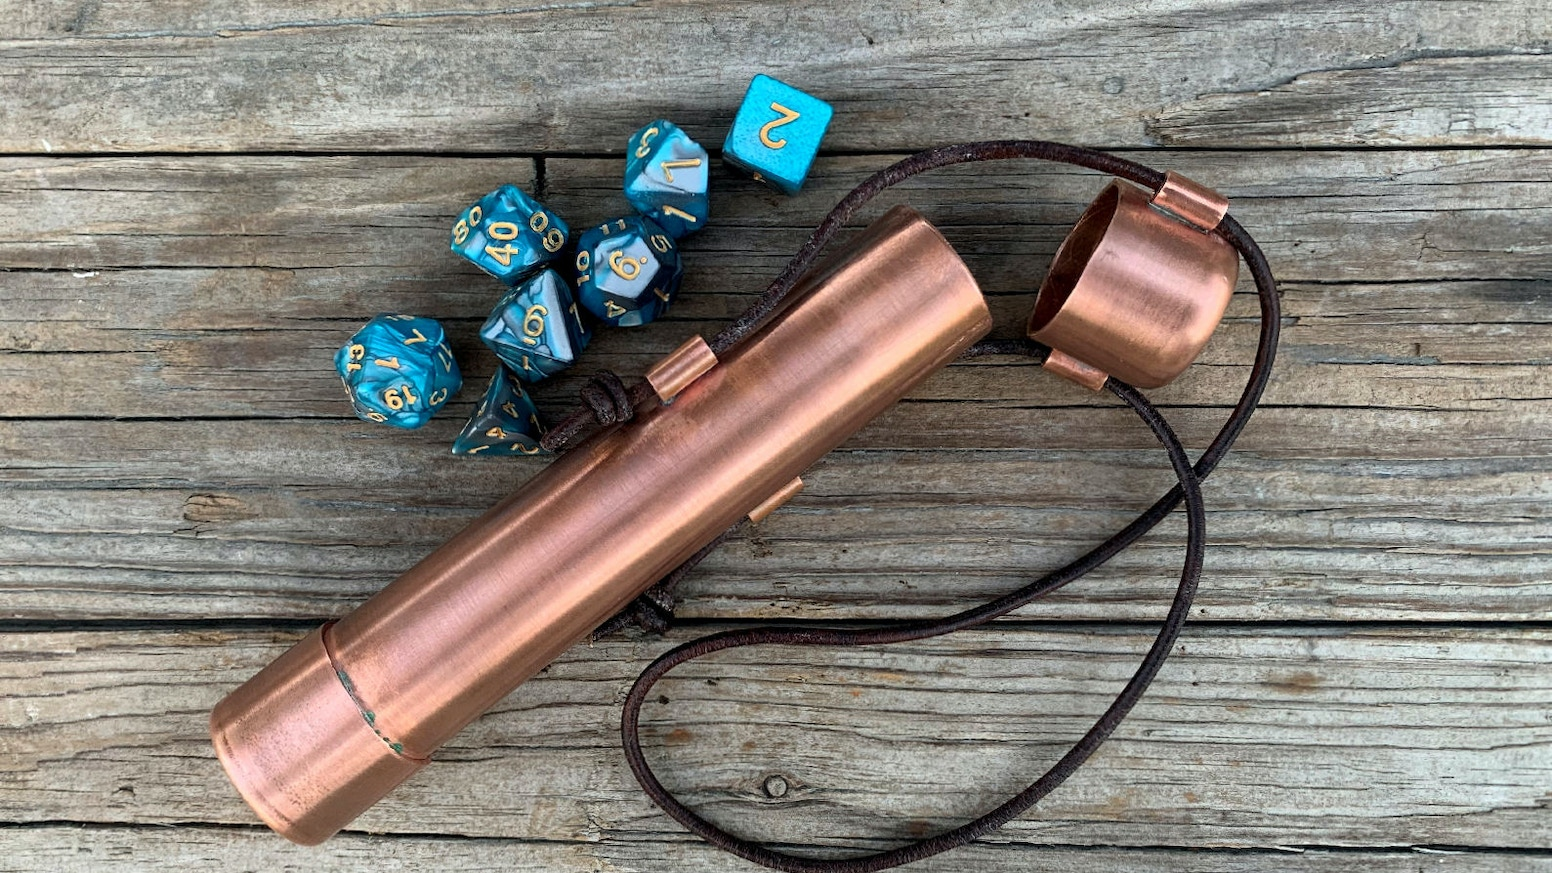 Dice Vaults in Bright Copper or Blue Patina Copper and a Treasure Hoard of Hand Struck Pewter Coins